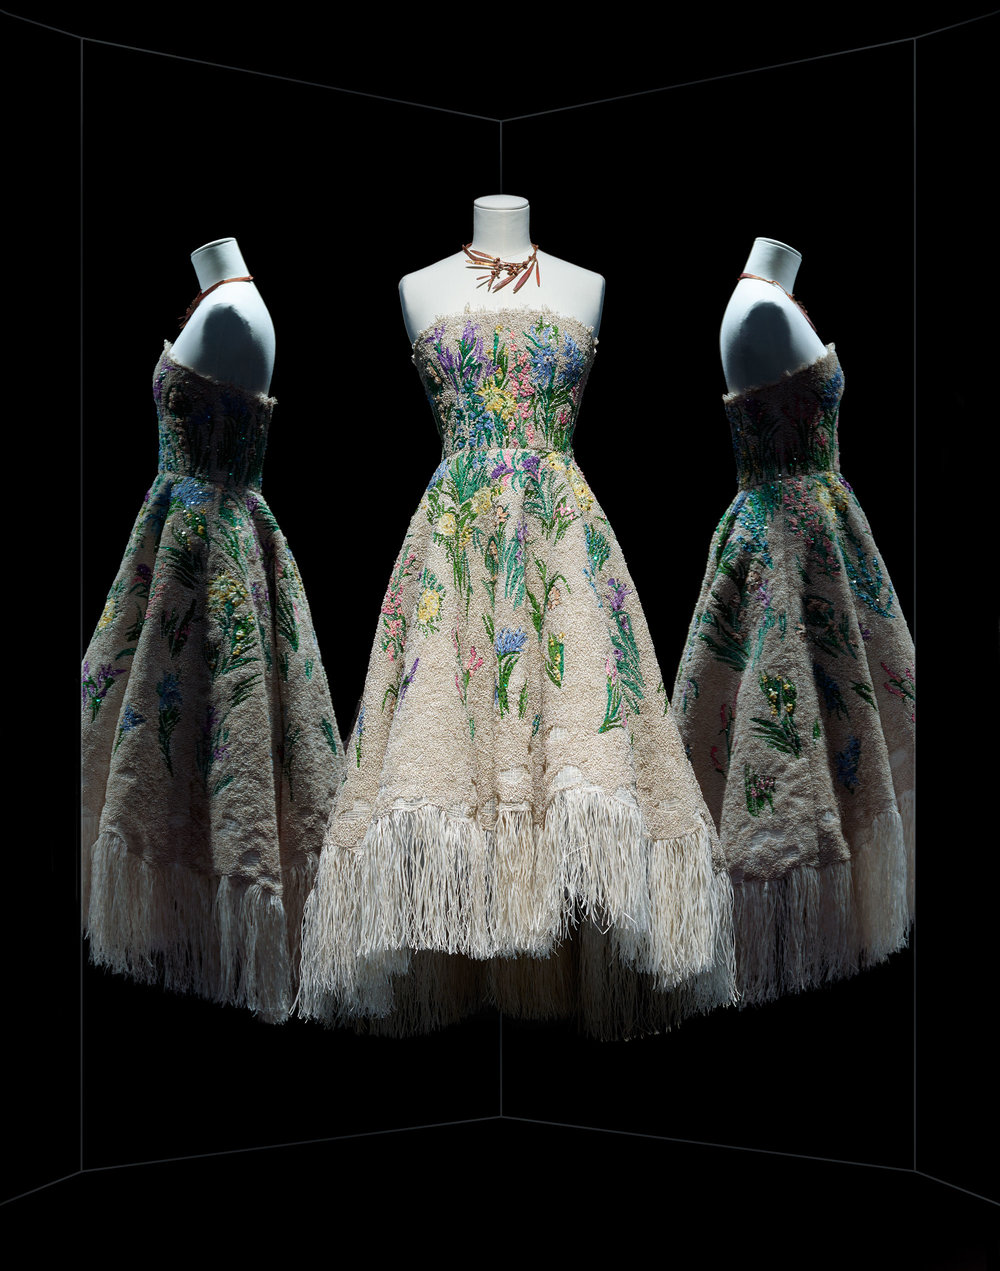 Maria Grazia Chiuri for Christian Dior, Essence d'herbier cocktail dress, Haute Couture, Spring-Summer 2017 Ecru fringe cocktail dress, floral raffia and thread embroidery adorned with Swarovski crystals, derived from a Christian Dior original embroidery ©~MAD / Nicholas Alan Cope